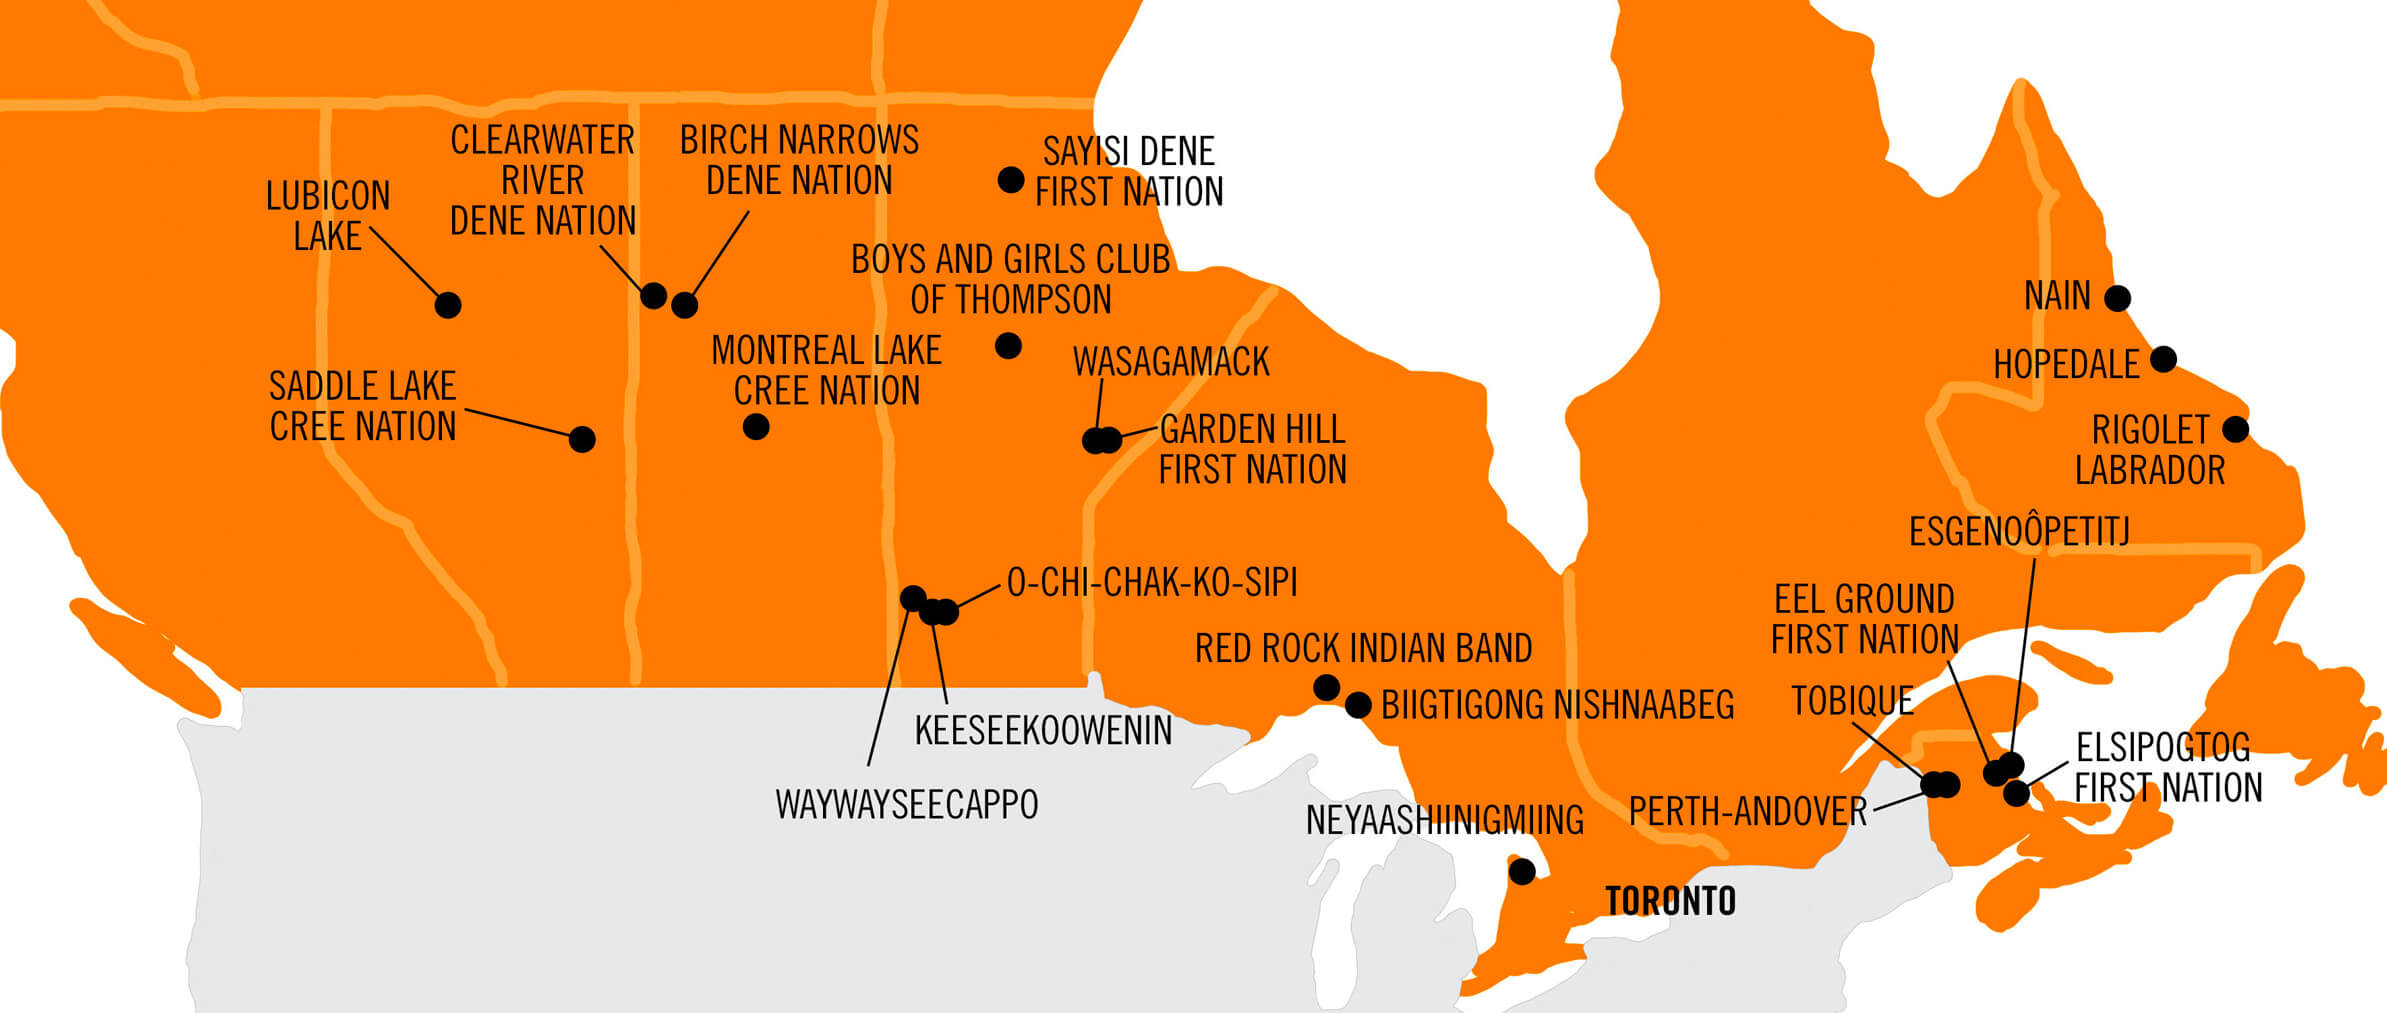 Map showing the location of CFTC's Indigenous partner communities